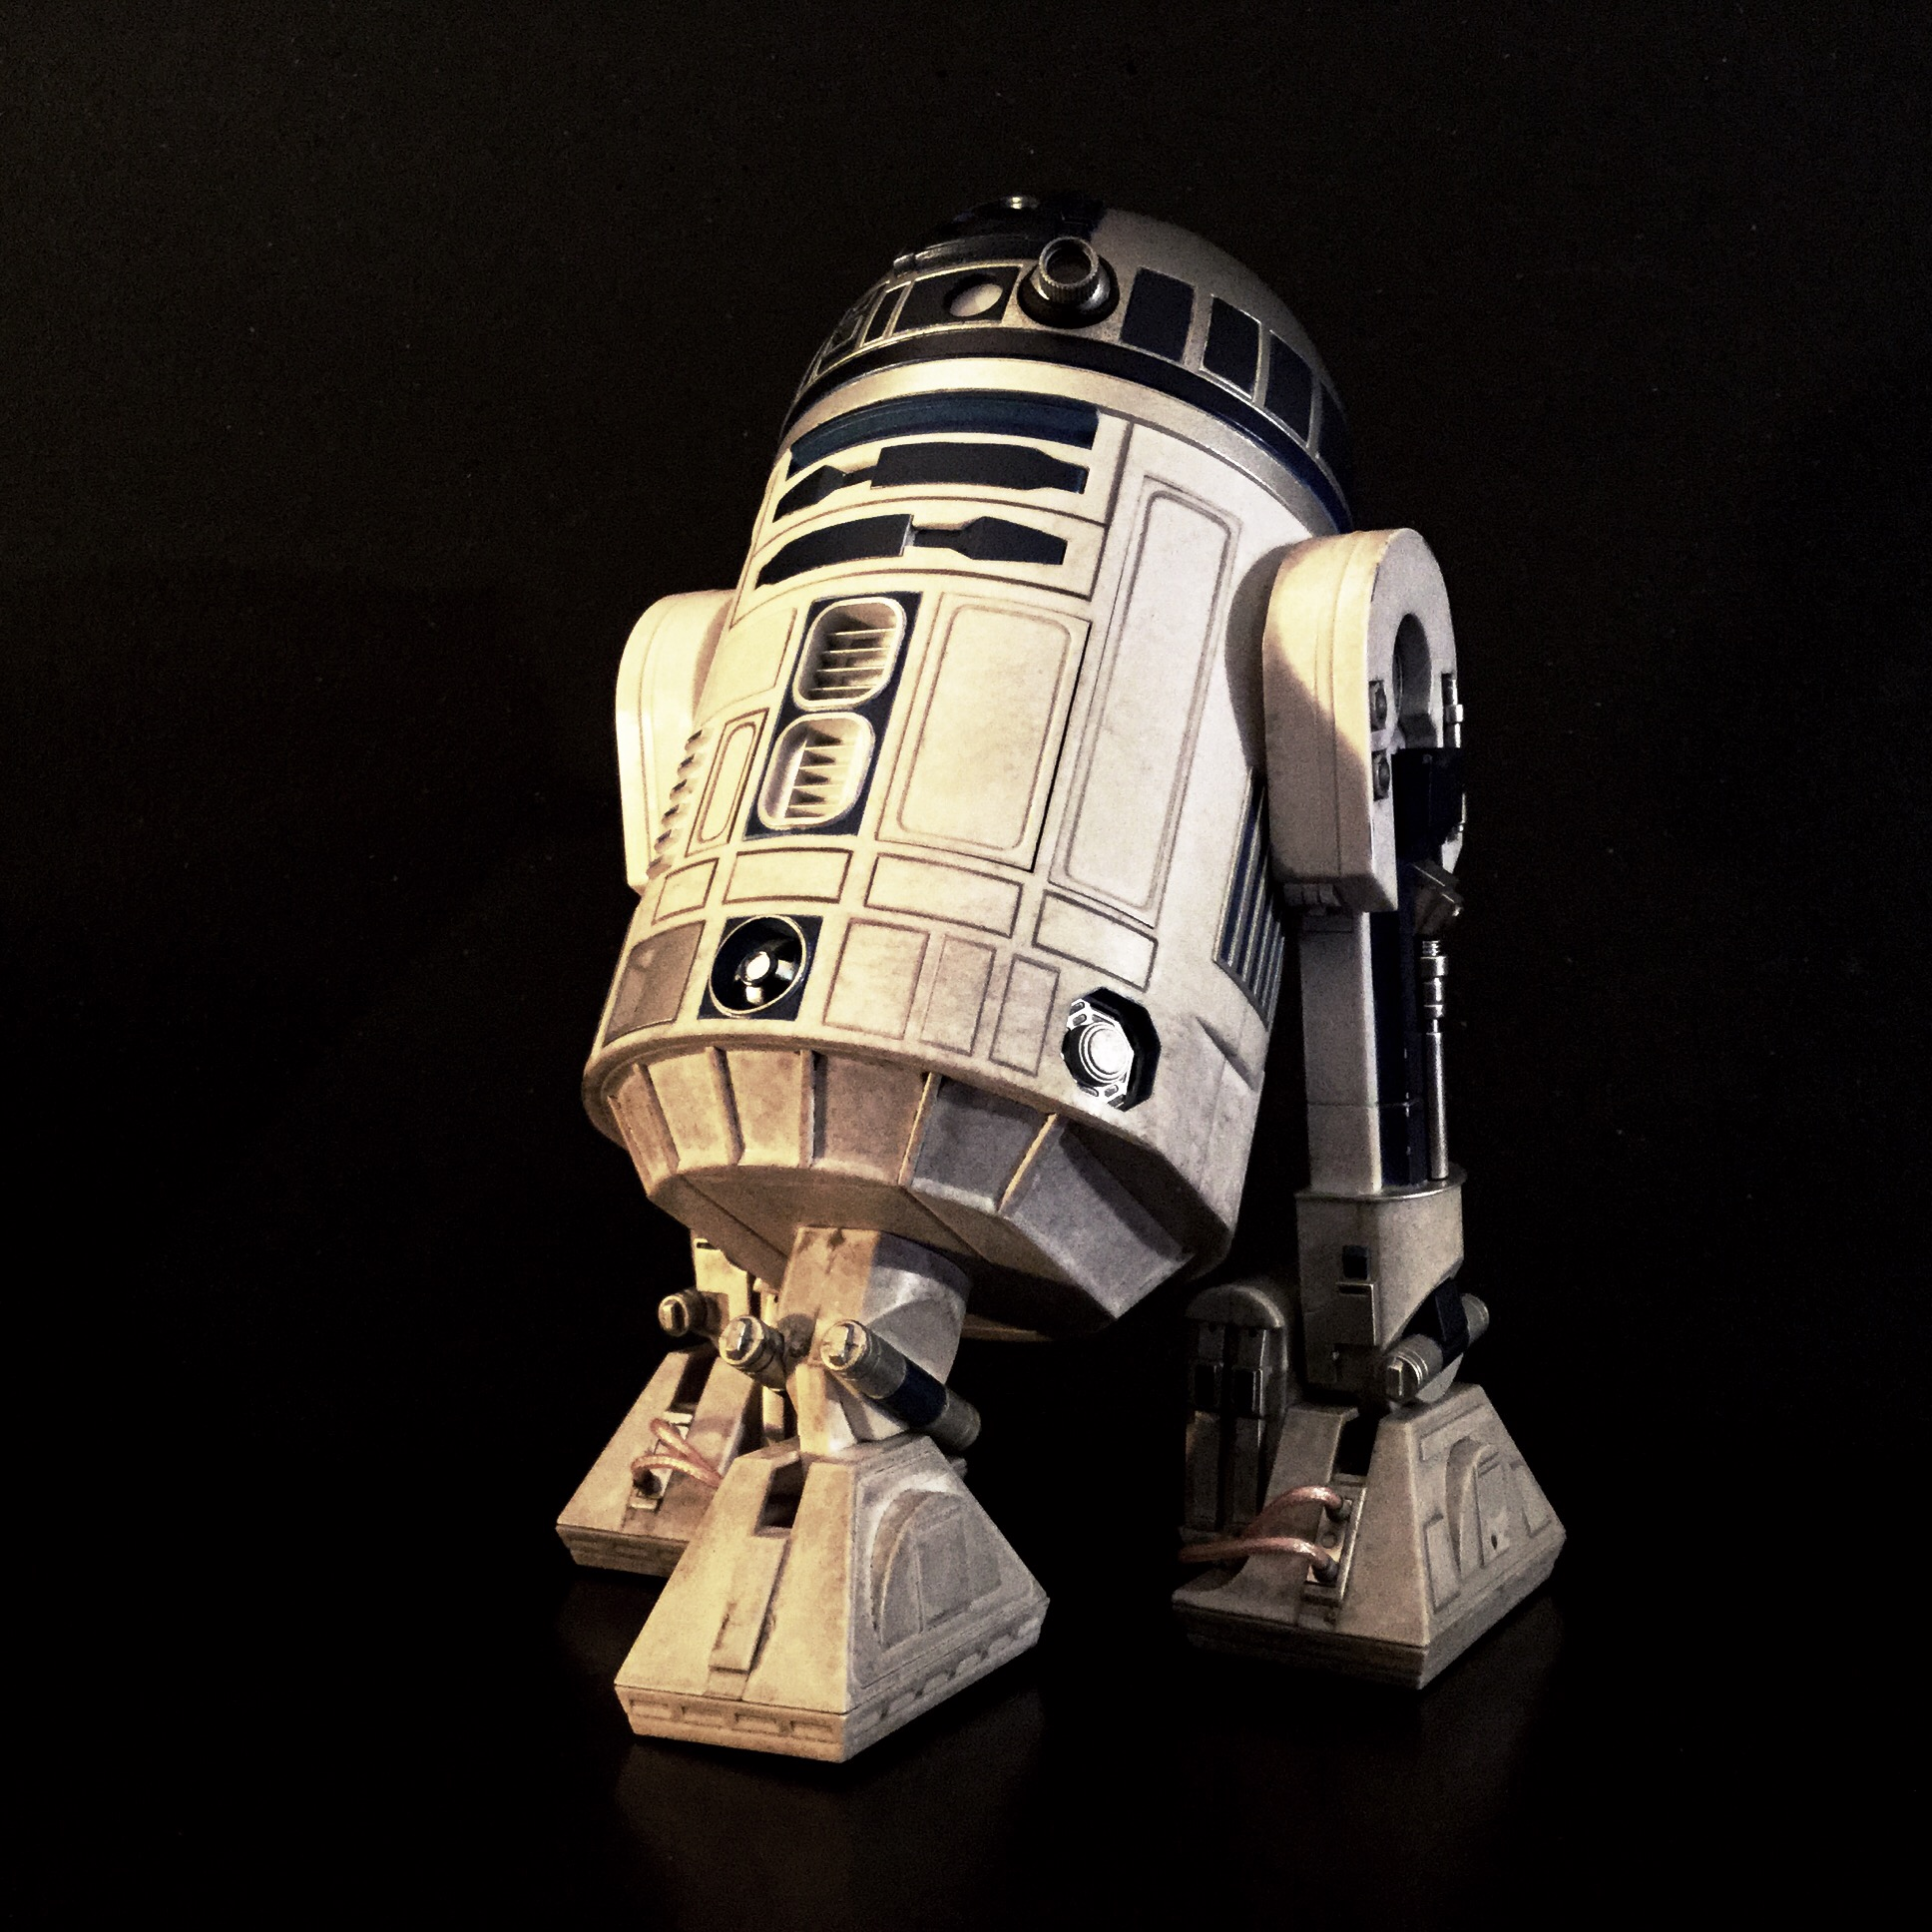 [REVIEW] Star Wars : R2-D2 Deluxe (Sideshow) 16418146126_739d5d1836_o